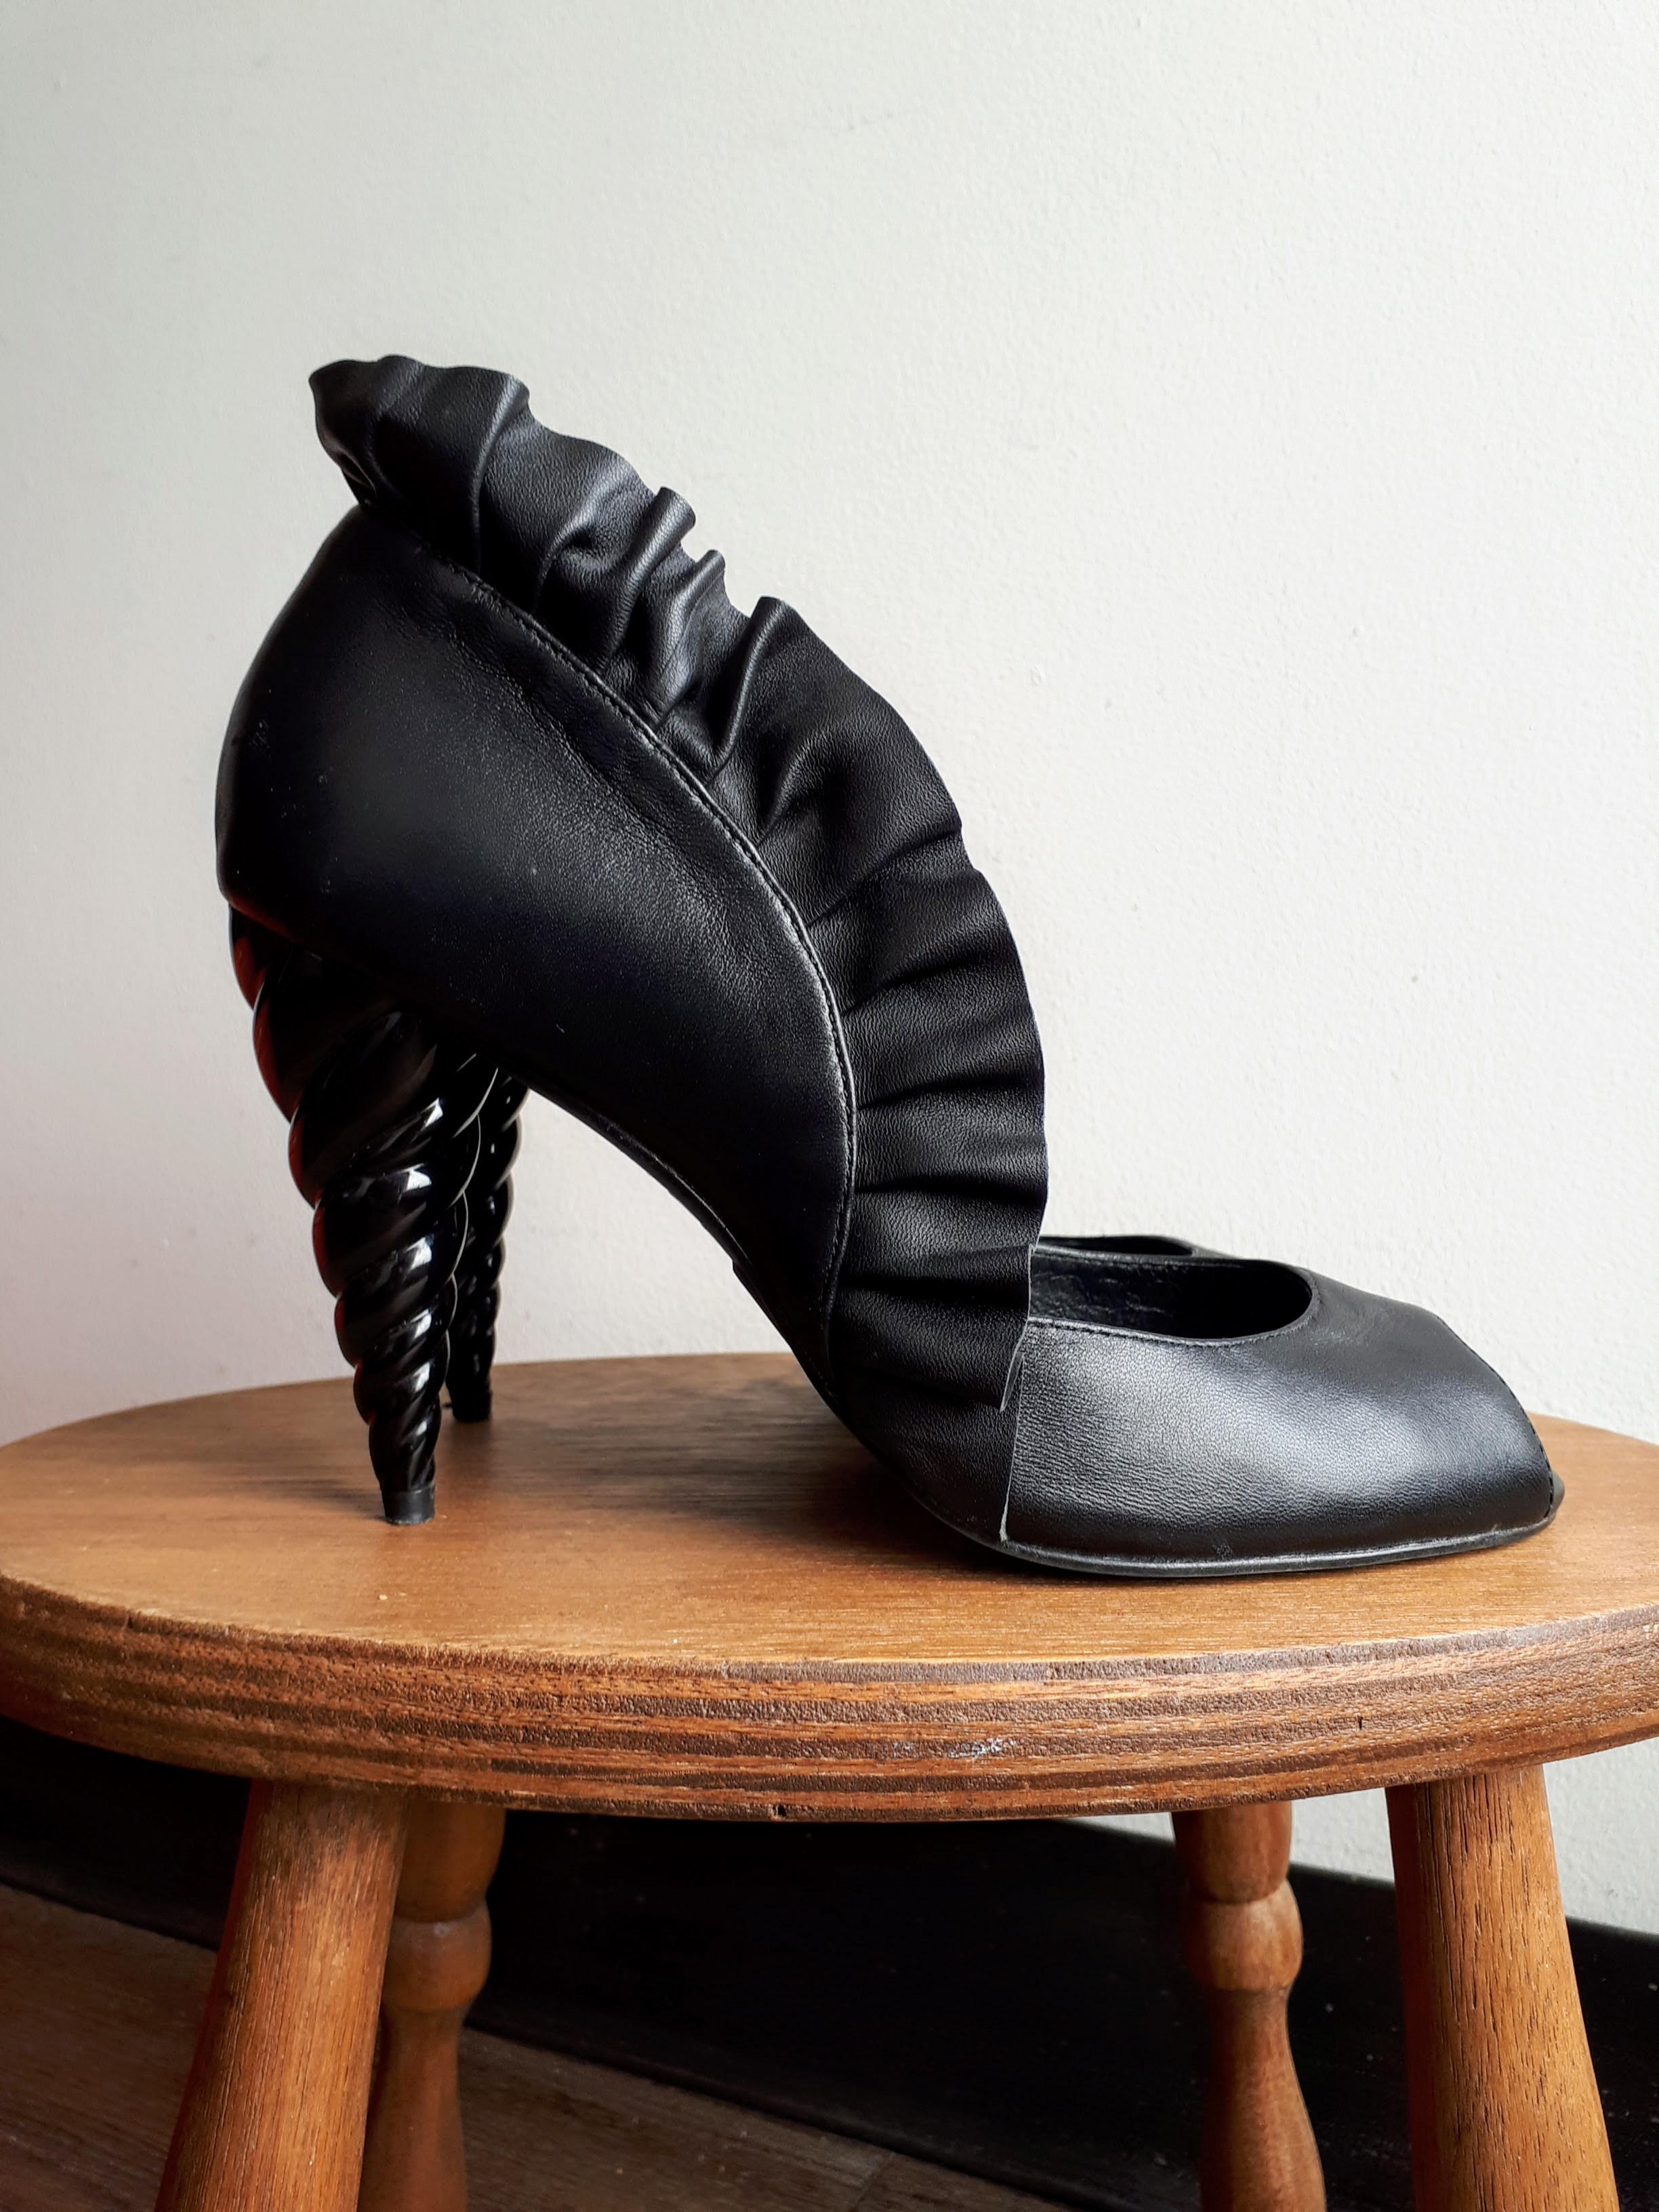 Jeffery Campbell shoes; S8, $62